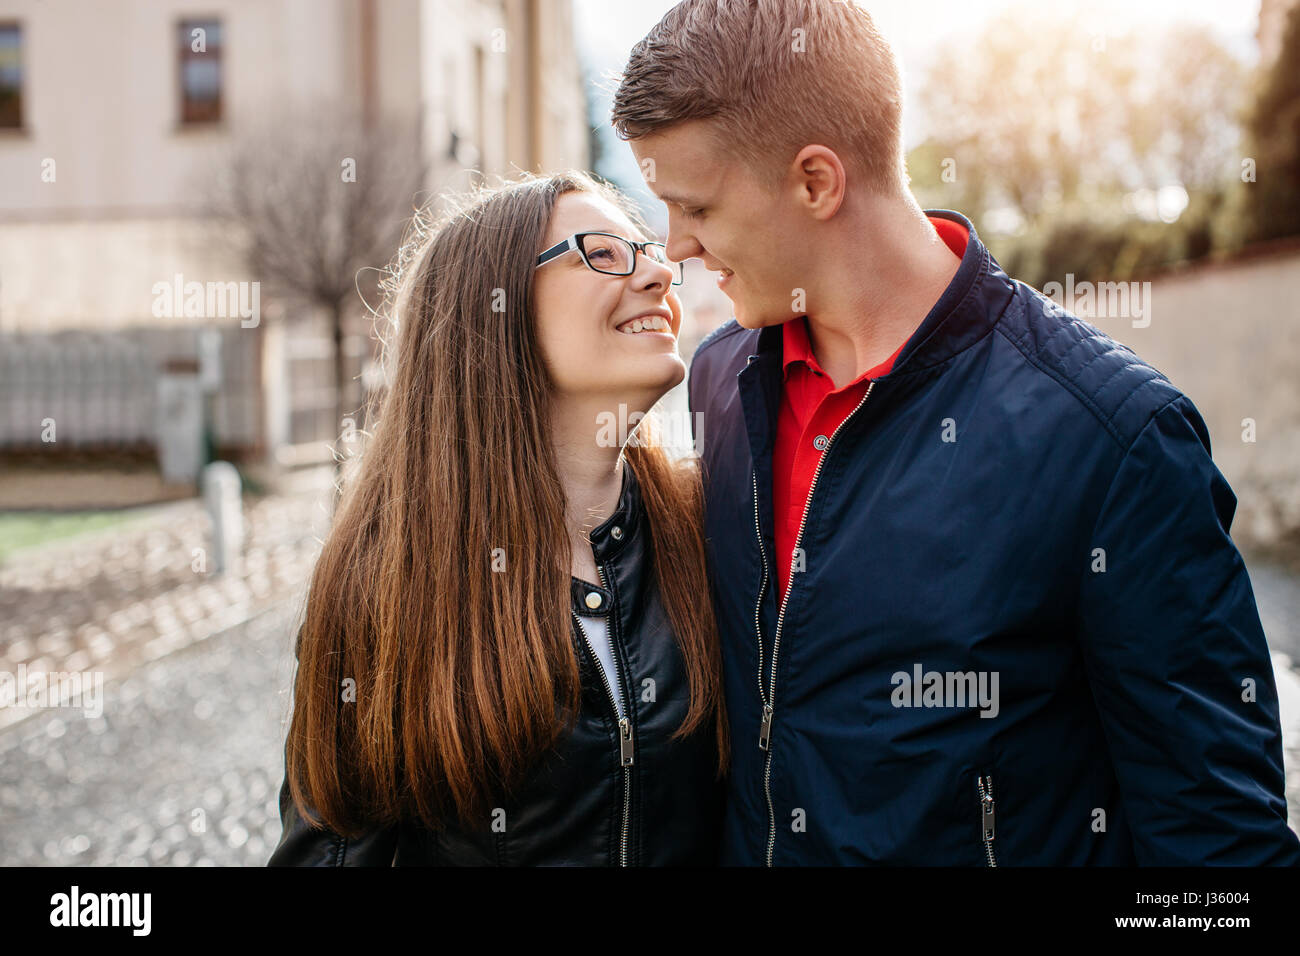 A young couple in love embracing and looking into each others eyes - Stock Image